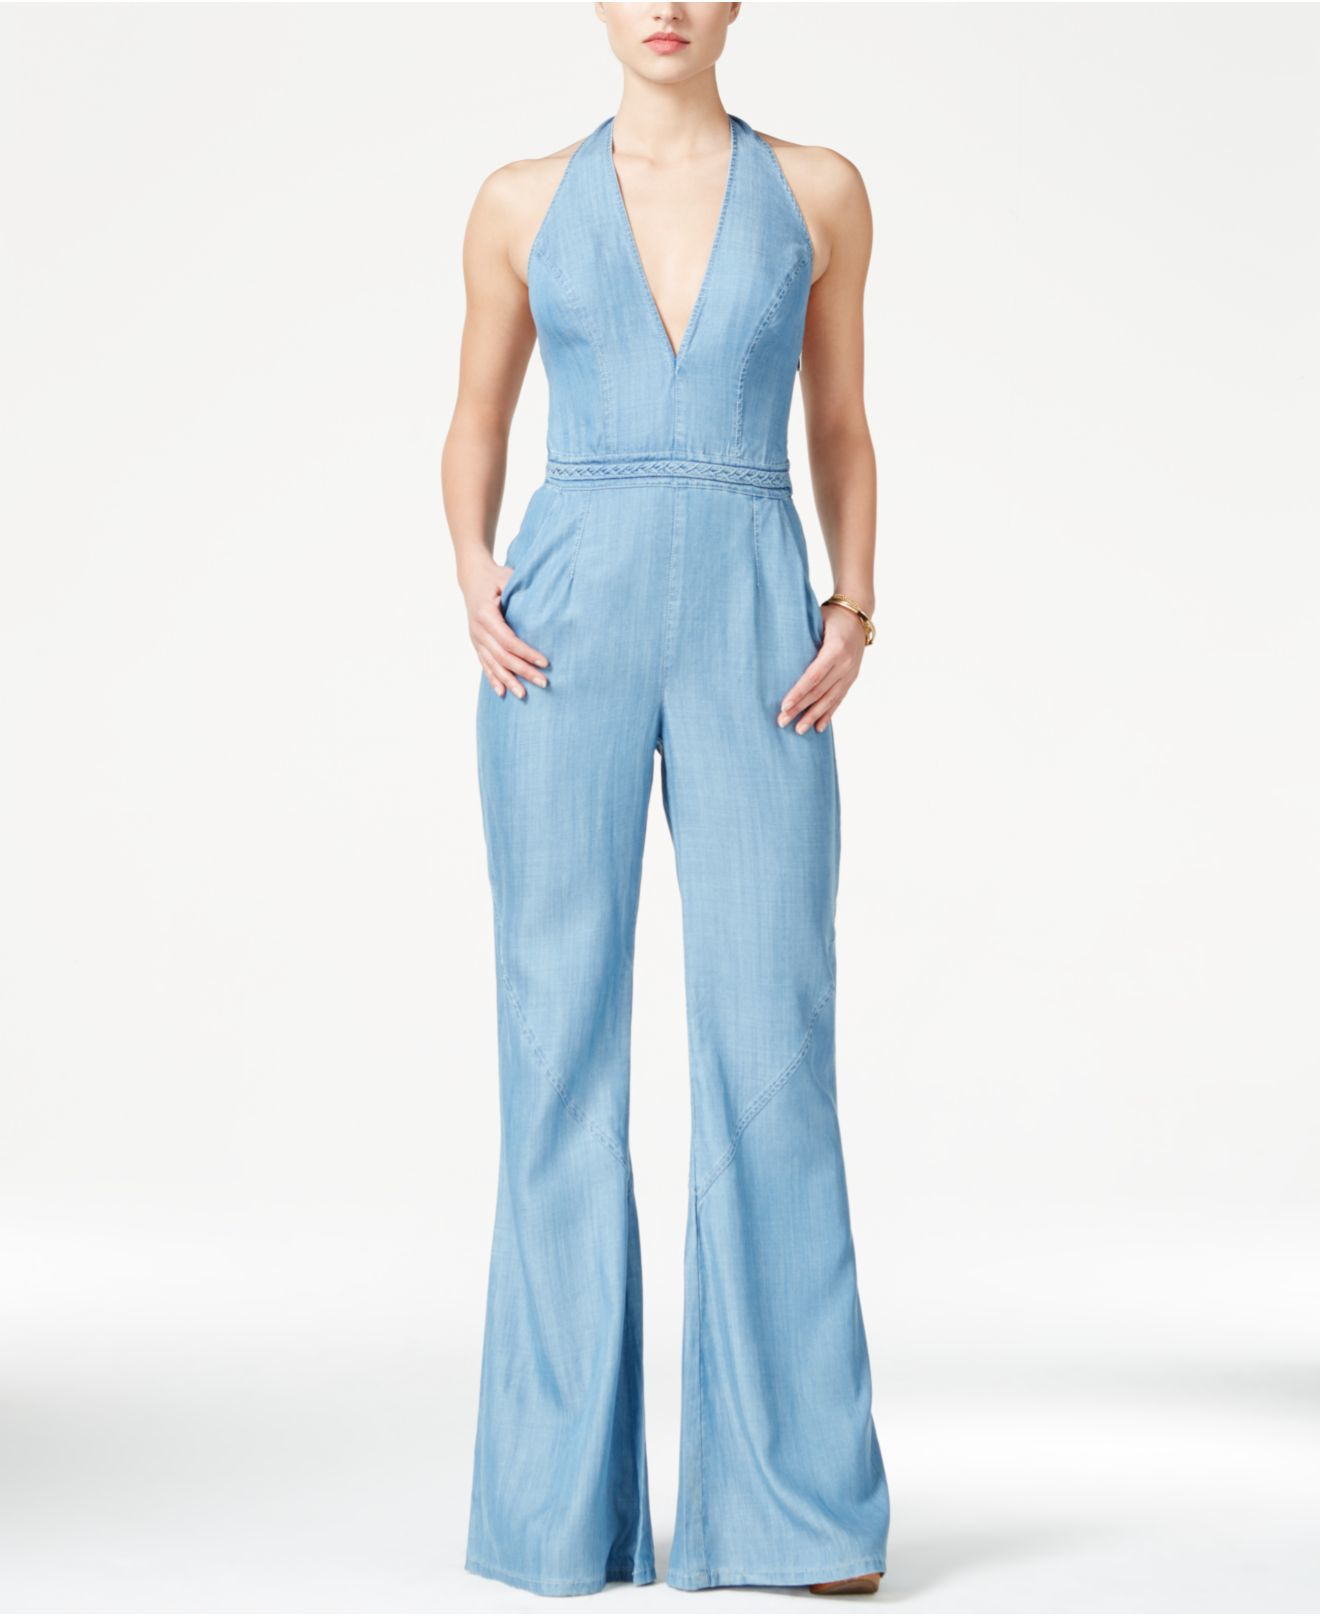 Guess Wide-leg Denim Halter Jumpsuit in Blue | Lyst